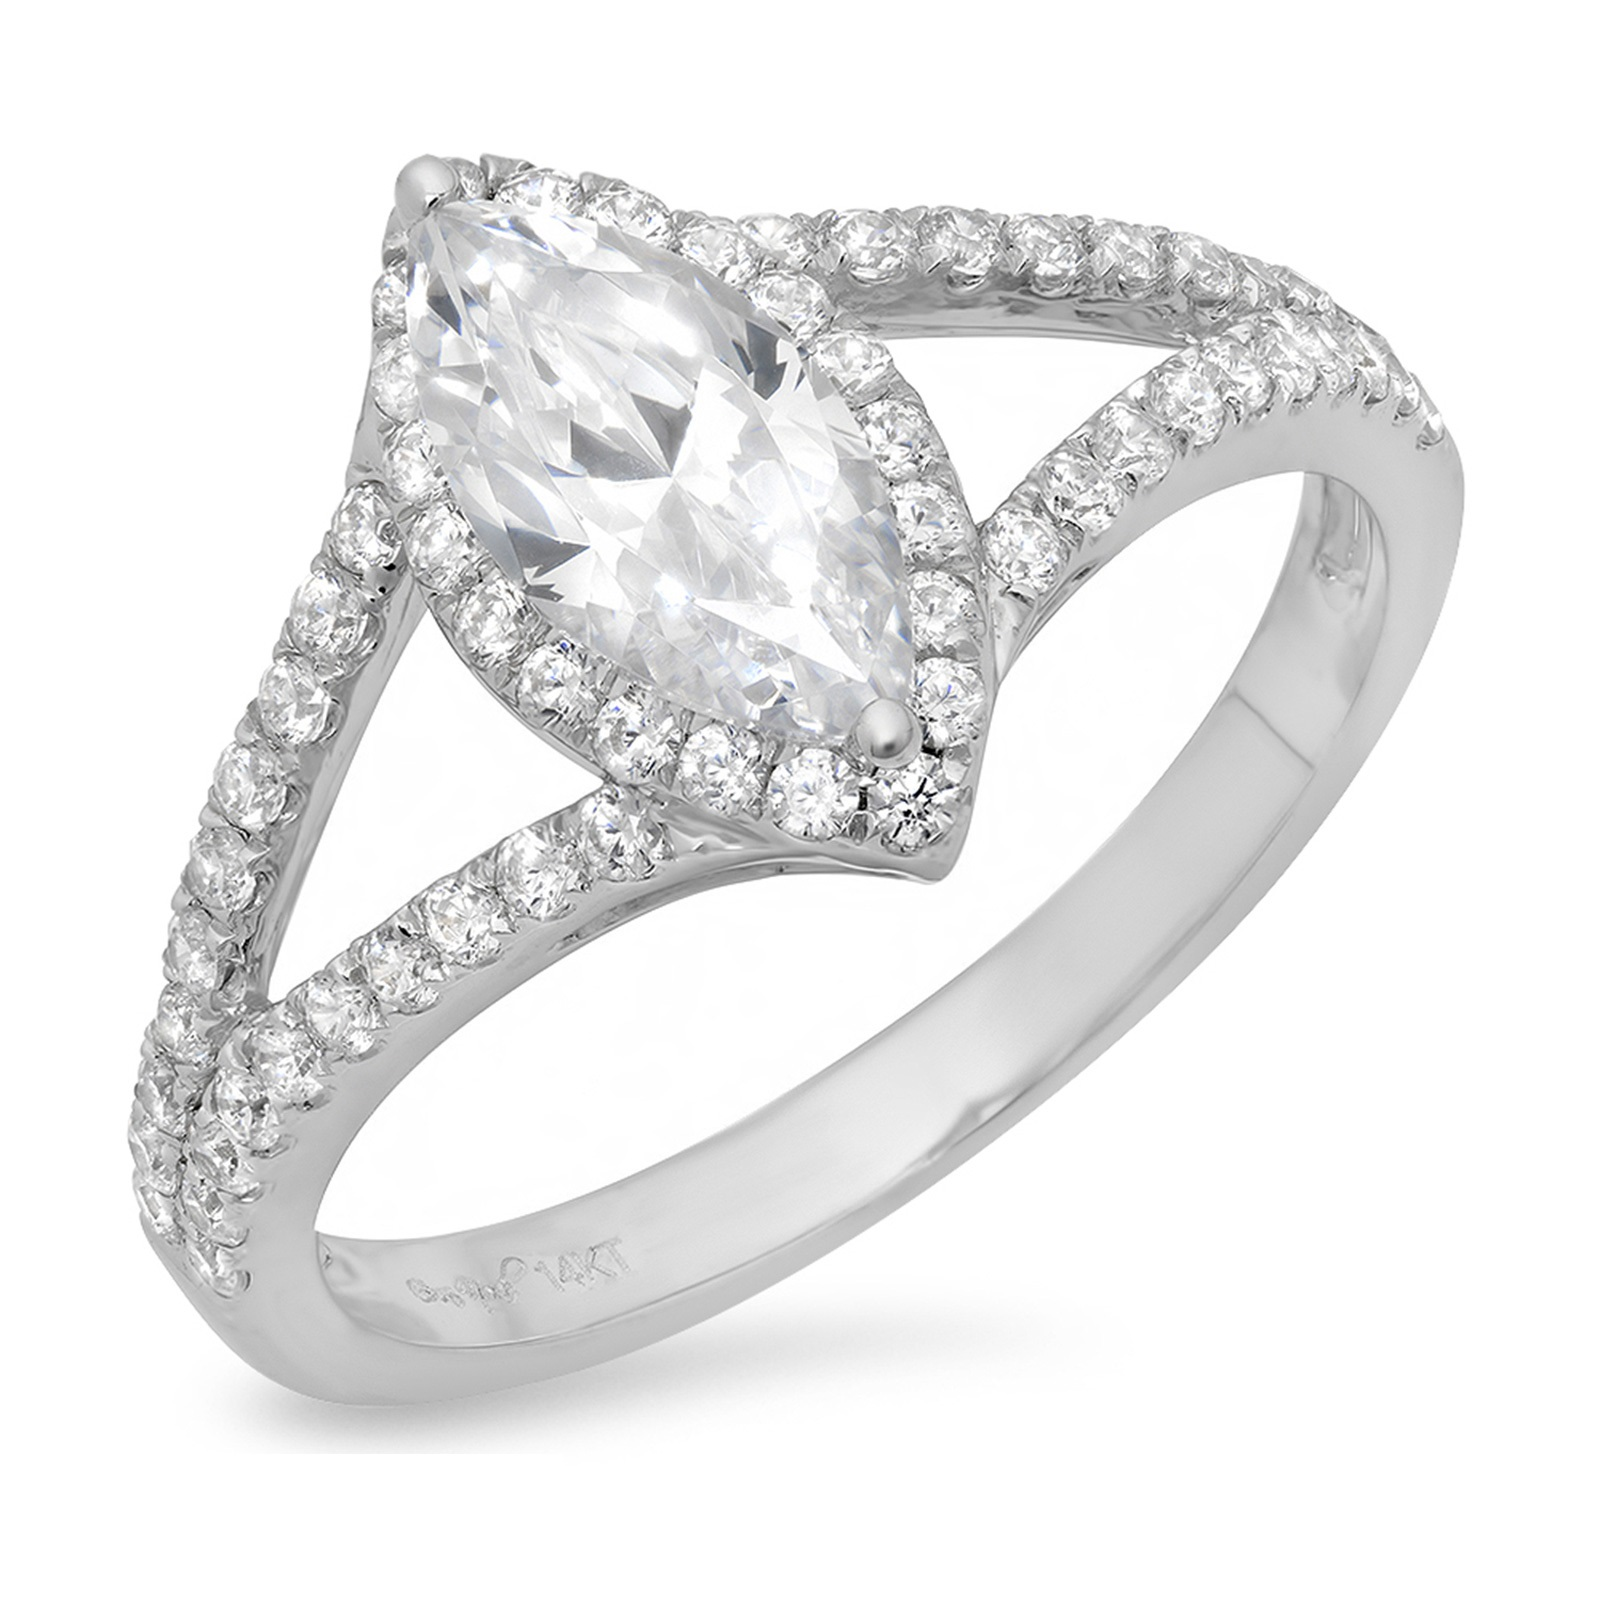 1.20CT Marquise Cut Simulated Diamond CZ Pave Halo Weddin...